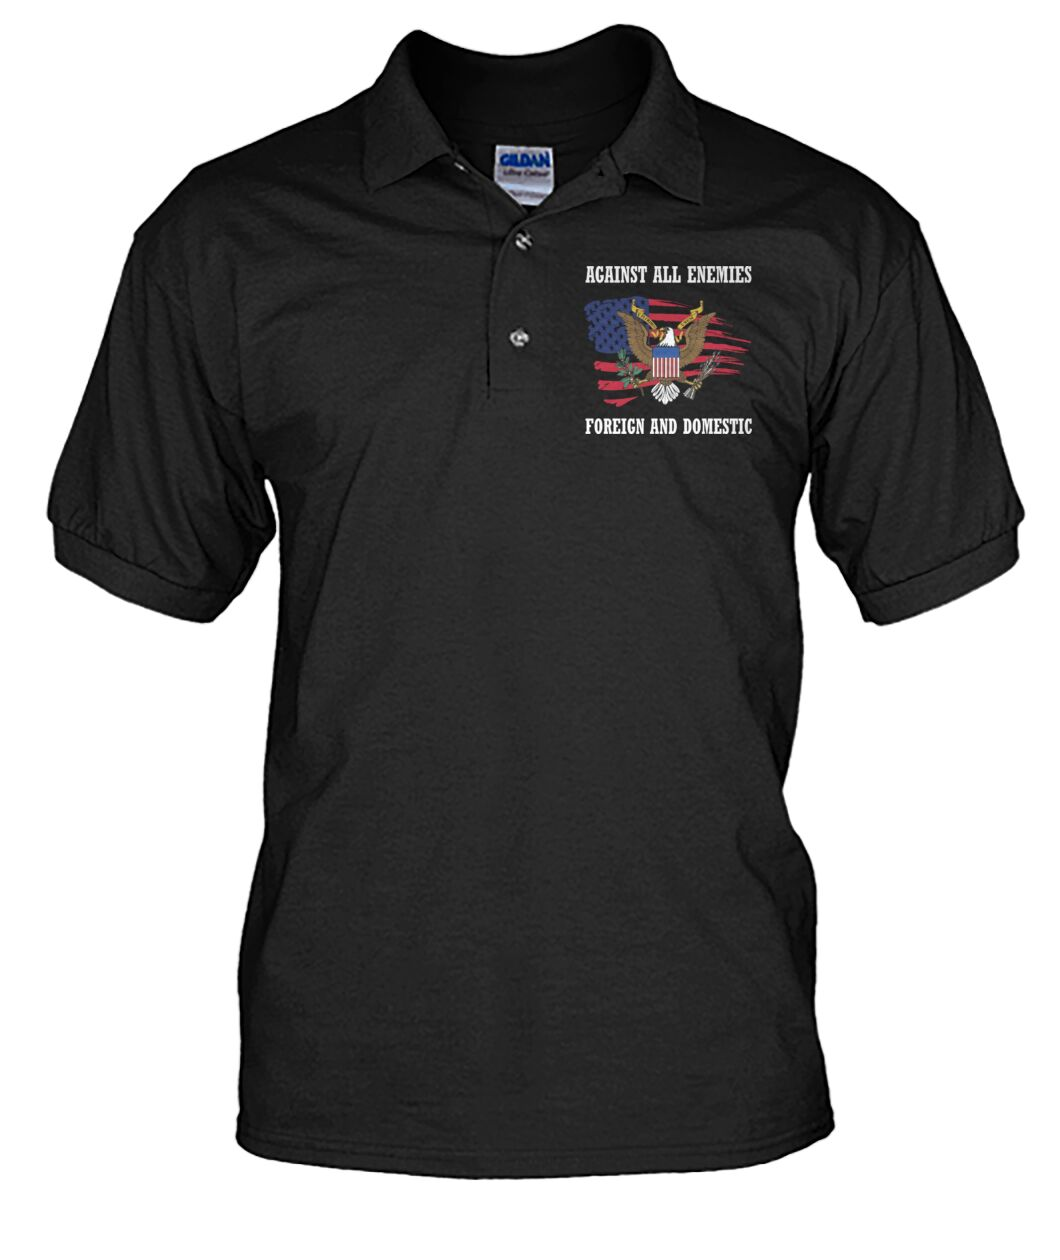 American Eagle Against All Enemies Foreign And Domestic Polo Shirt 1